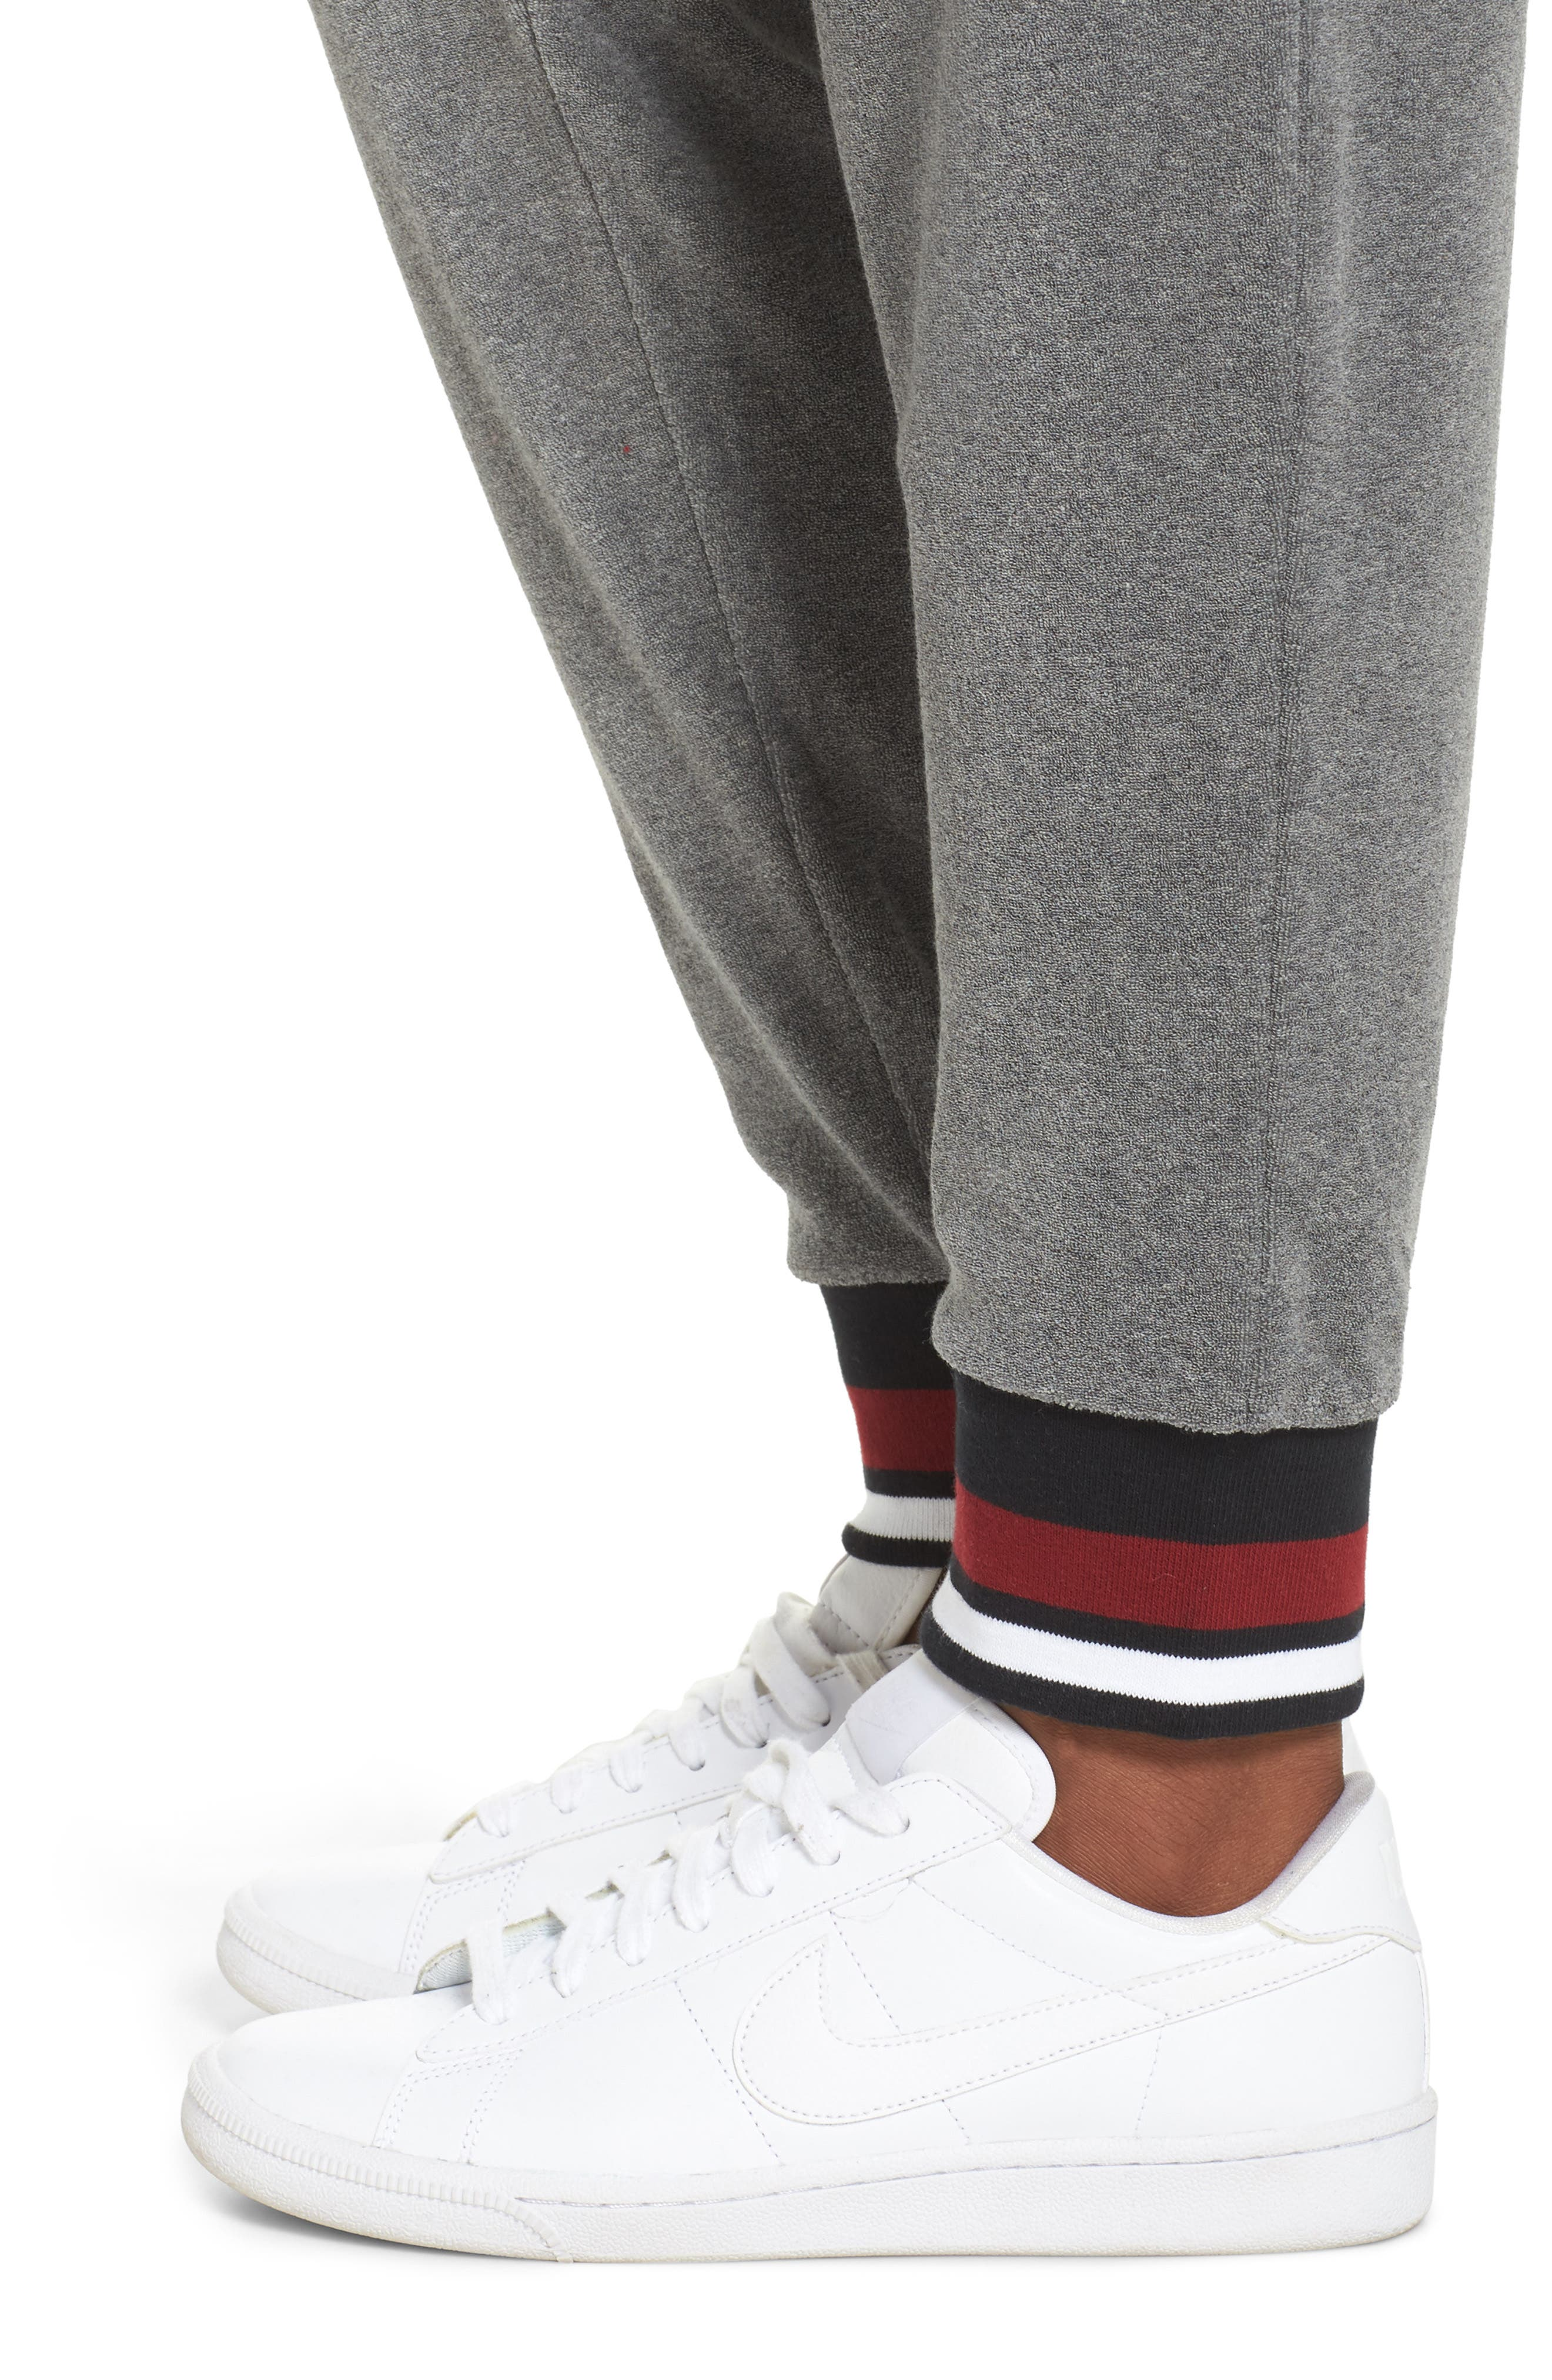 Sportswear French Terry Pants,                             Alternate thumbnail 4, color,                             Carbon Heather/ Team Red